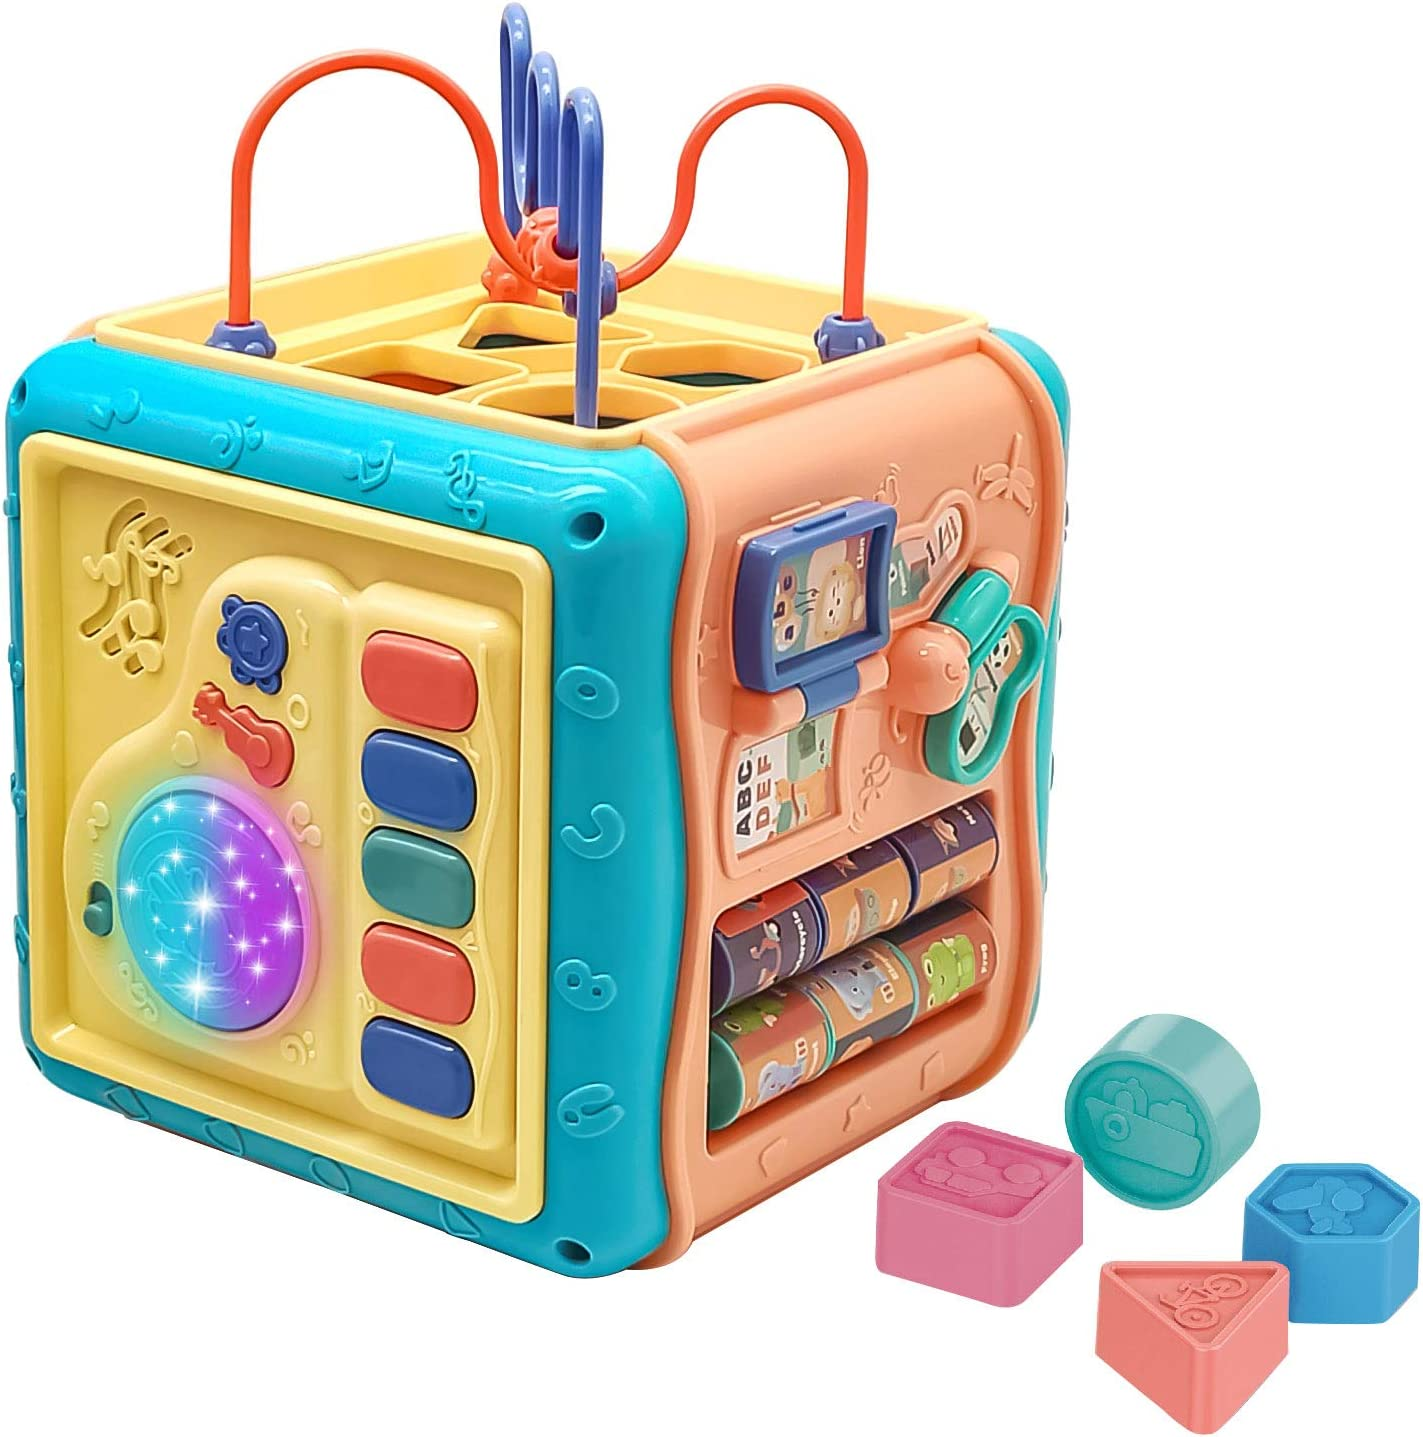 Baby Toys,Activity Cube,Baby Activity Cube Toddler Toys with Music - 6 in 1 Shape Sorter Toys Baby Activity Play Centers for Kids Infants,Developmental Toddler Educational Learning Toys Gift